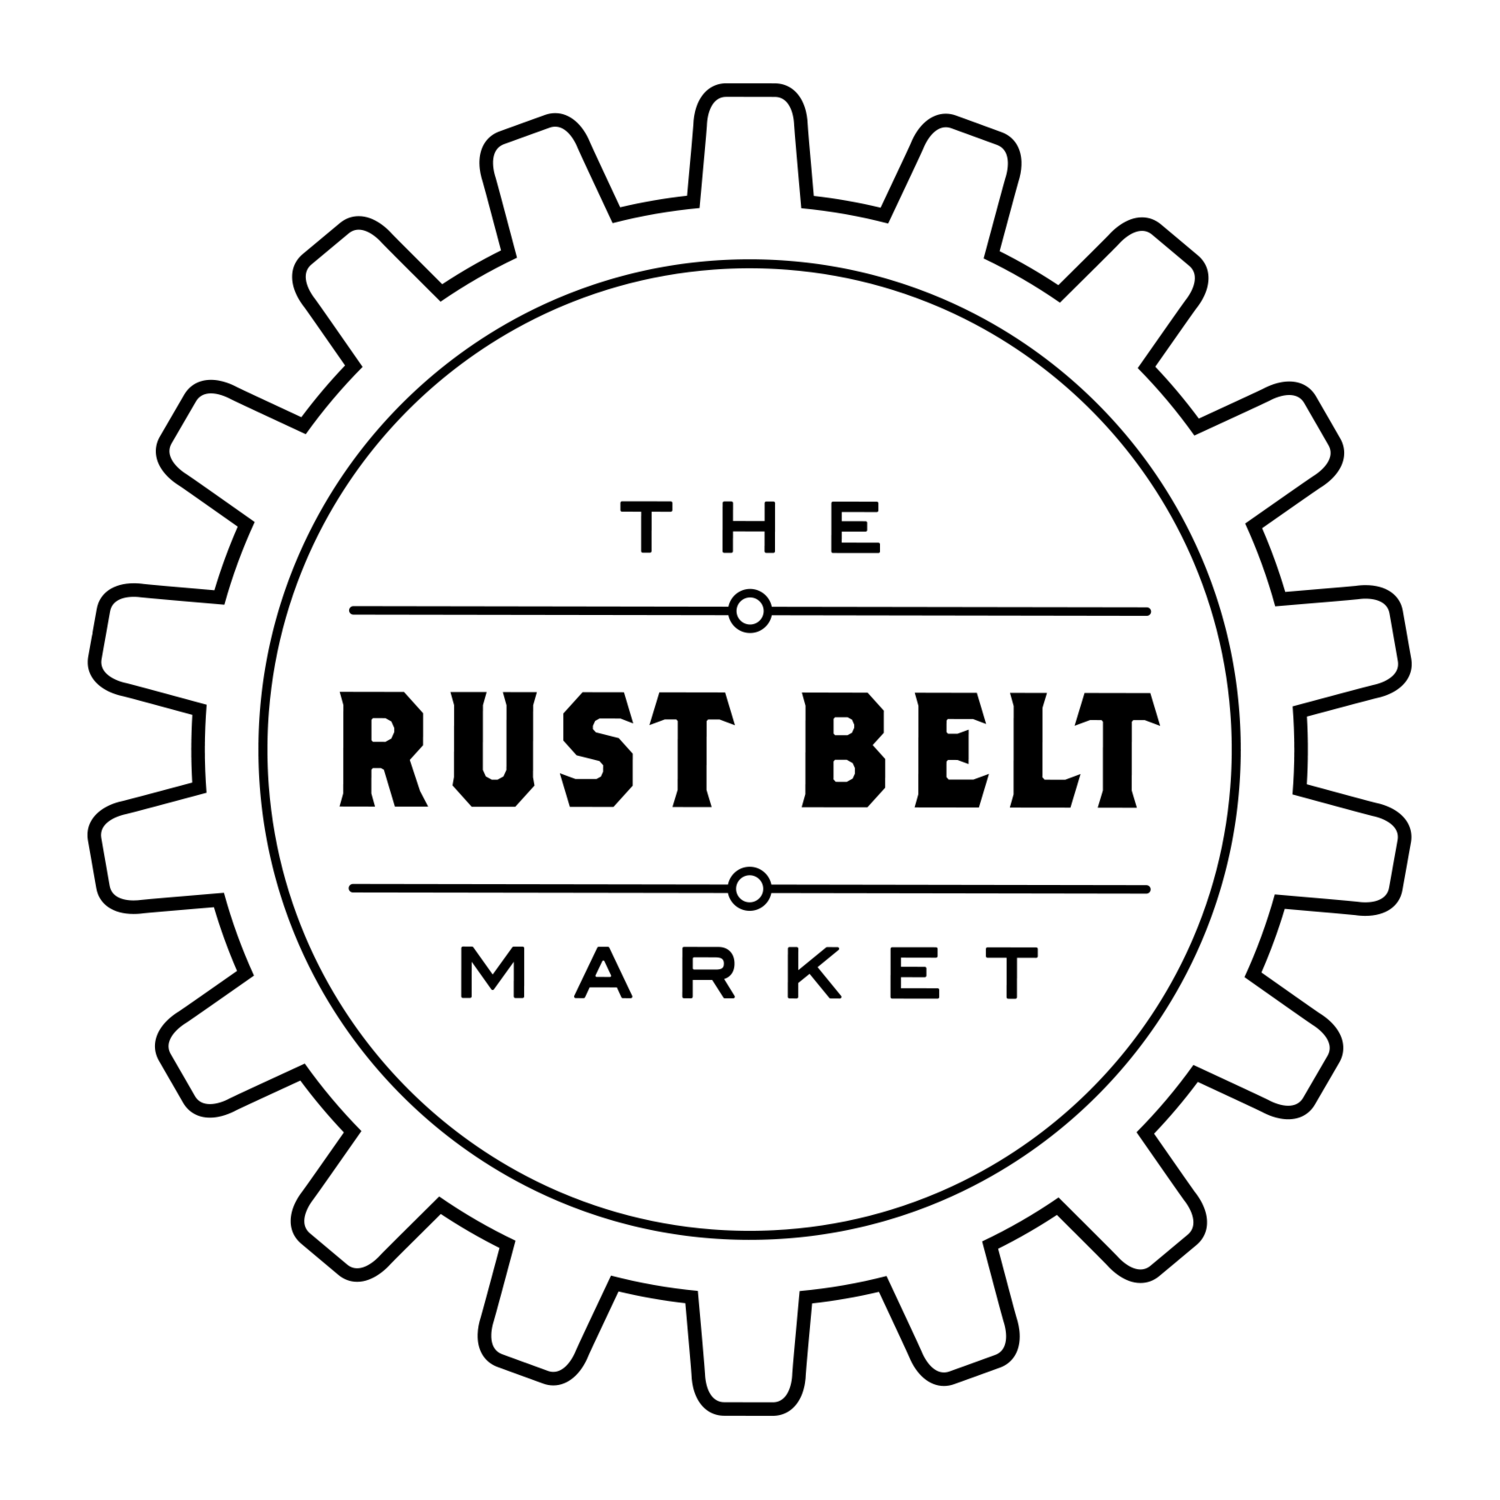 The Rust Belt Market